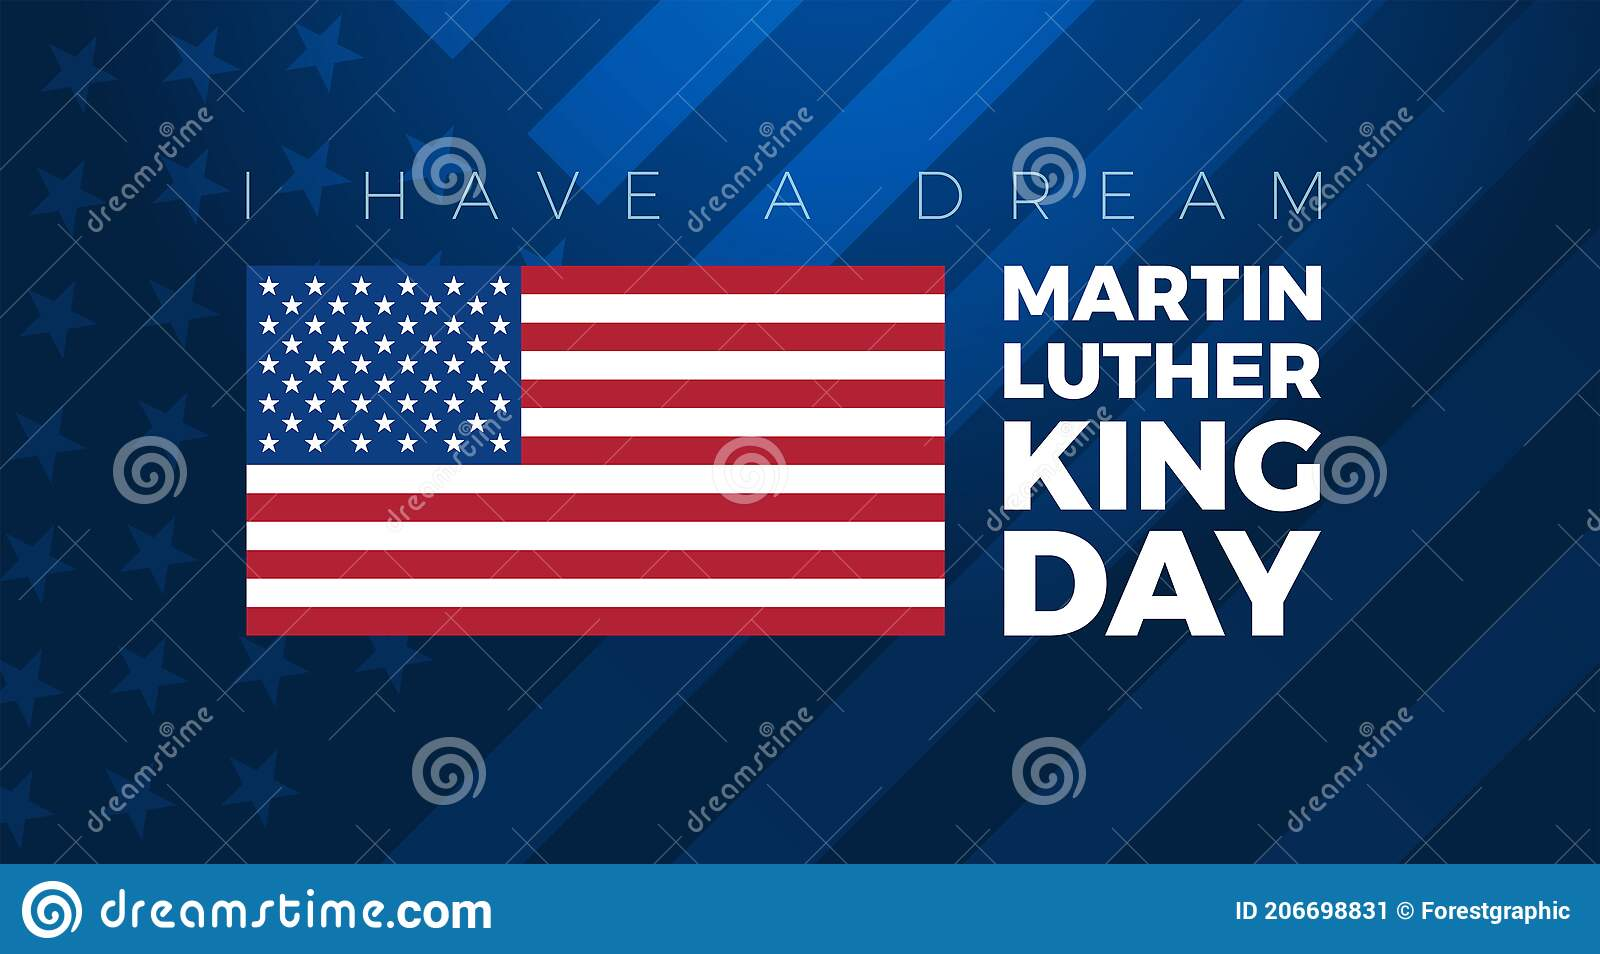 Martin Luther King Quote Stock Illustrations 123 Martin Luther King Quote Stock Illustrations Vectors Clipart Dreamstime